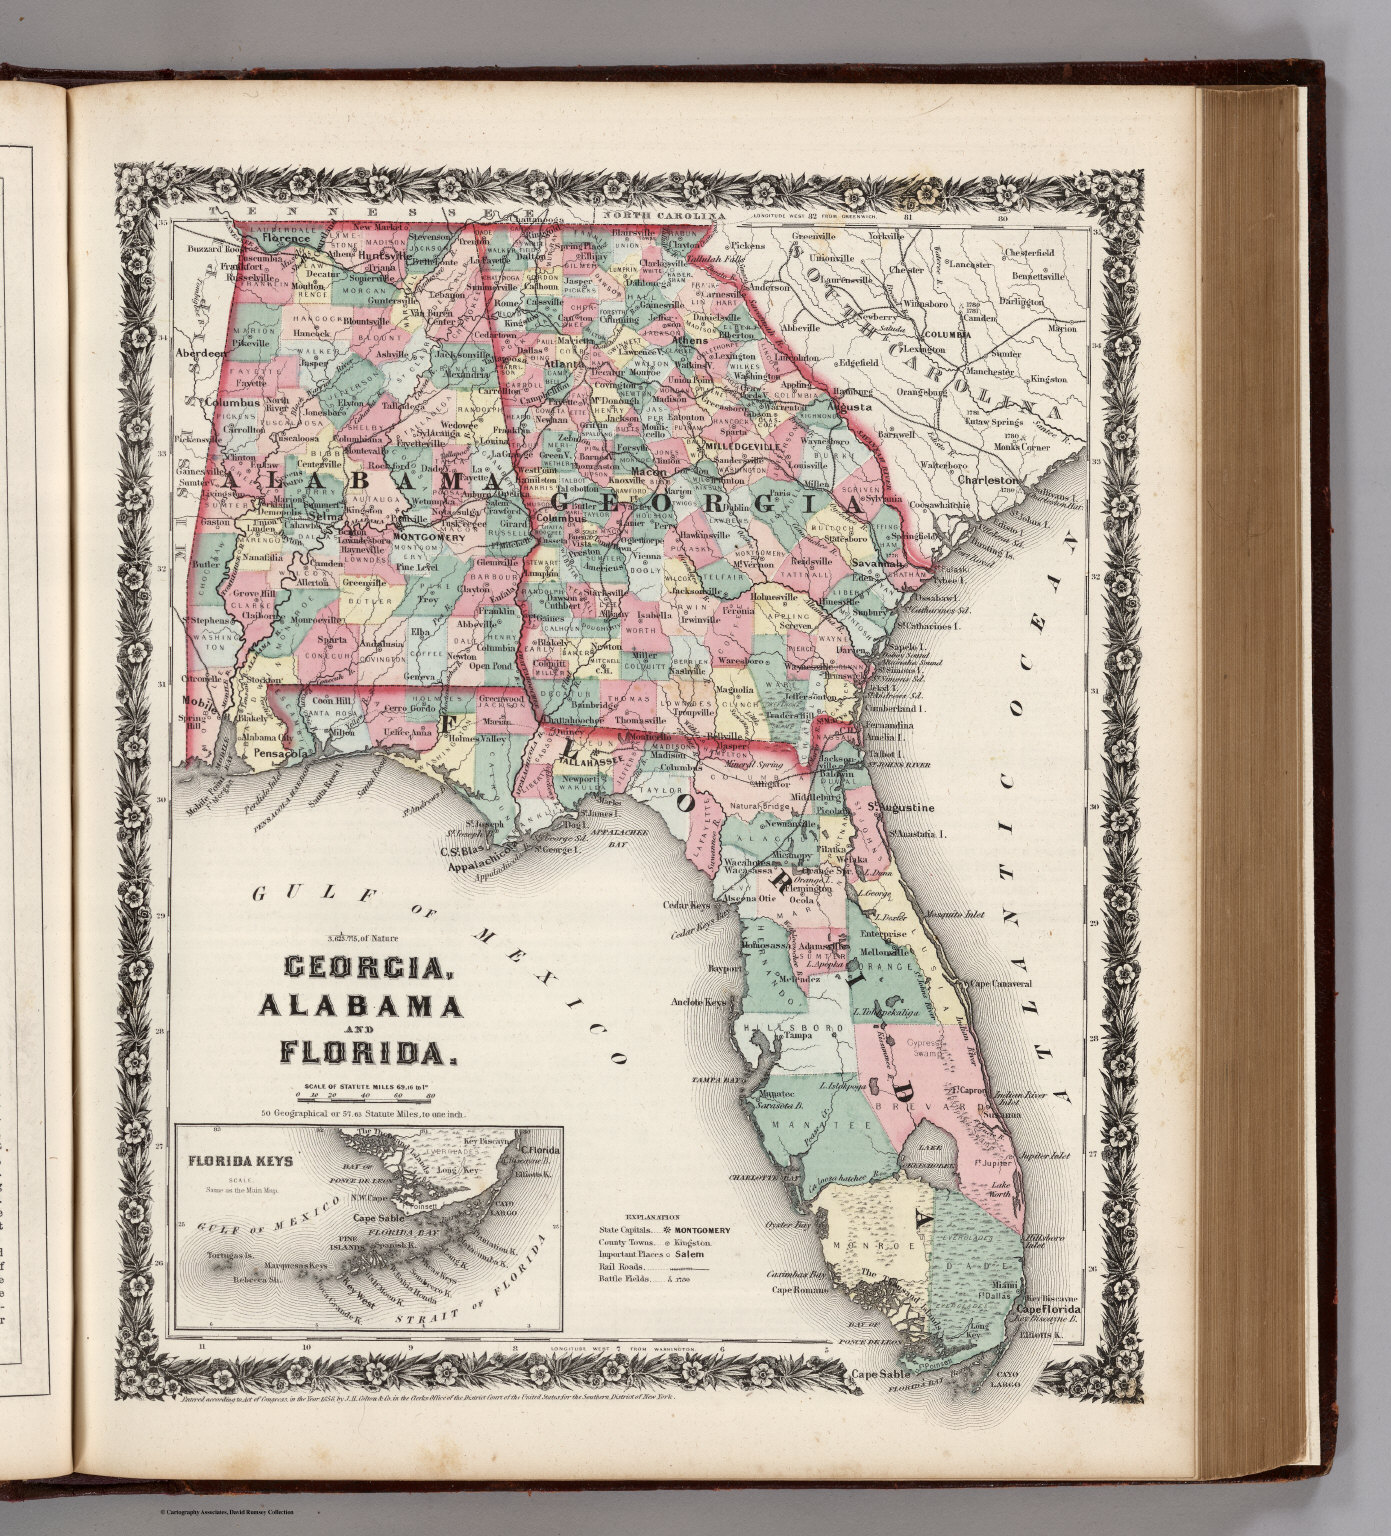 Similiar Map Of Florida And Alabama Keywords